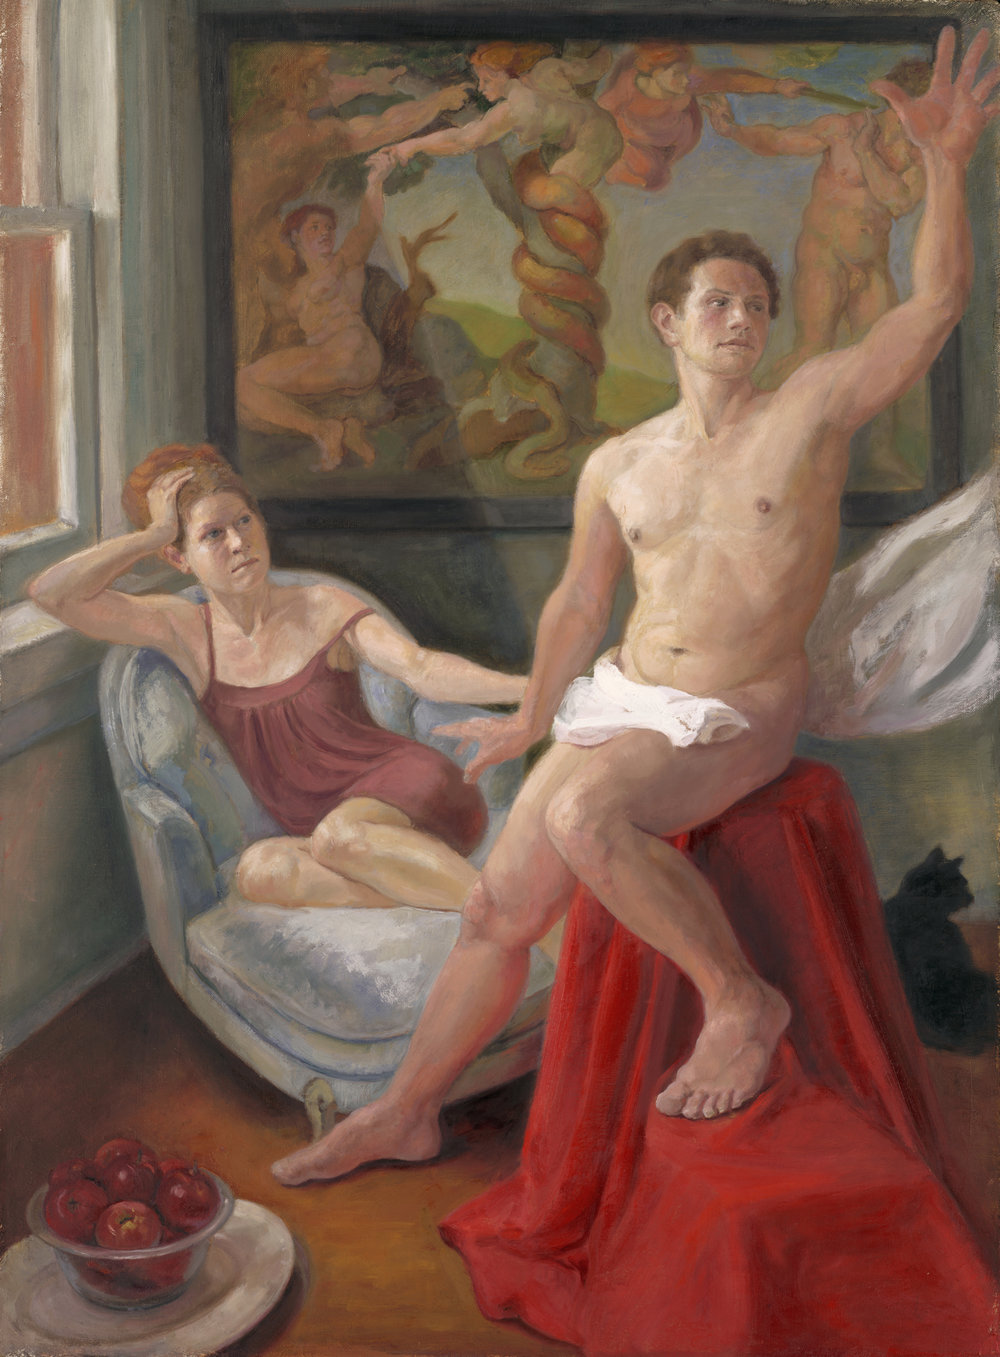 Resisting Temptation: Joseph with the Wife of Potiphar